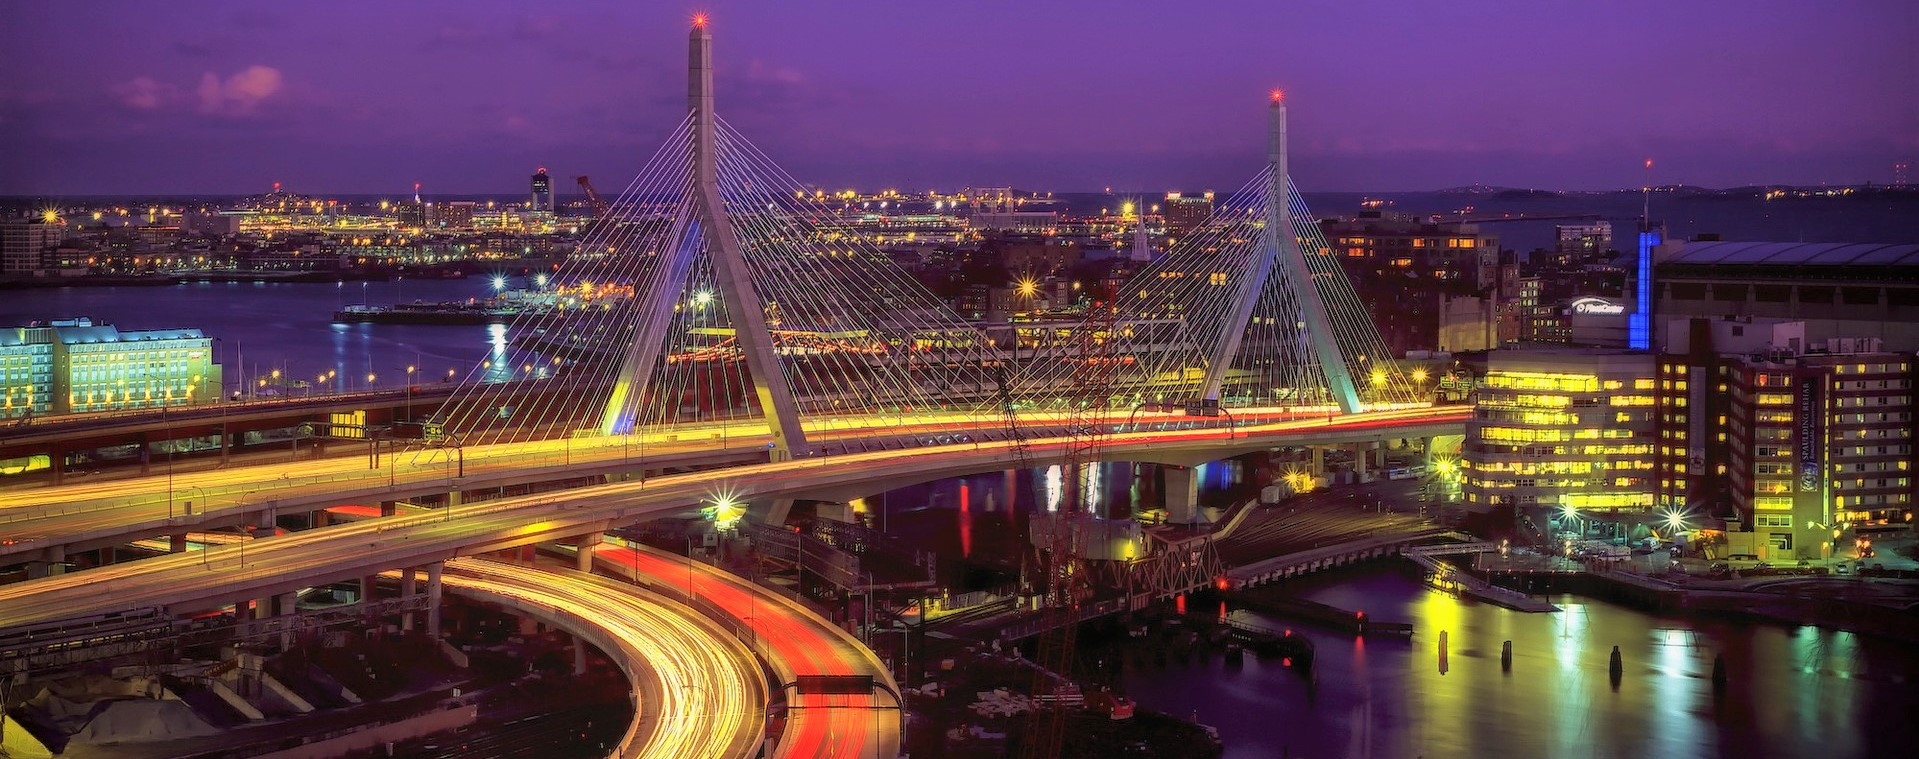 The Leonard P. Zakim Bunker Hill Memorial Bridge located in Boston Massachusetts | Kids Car Donations